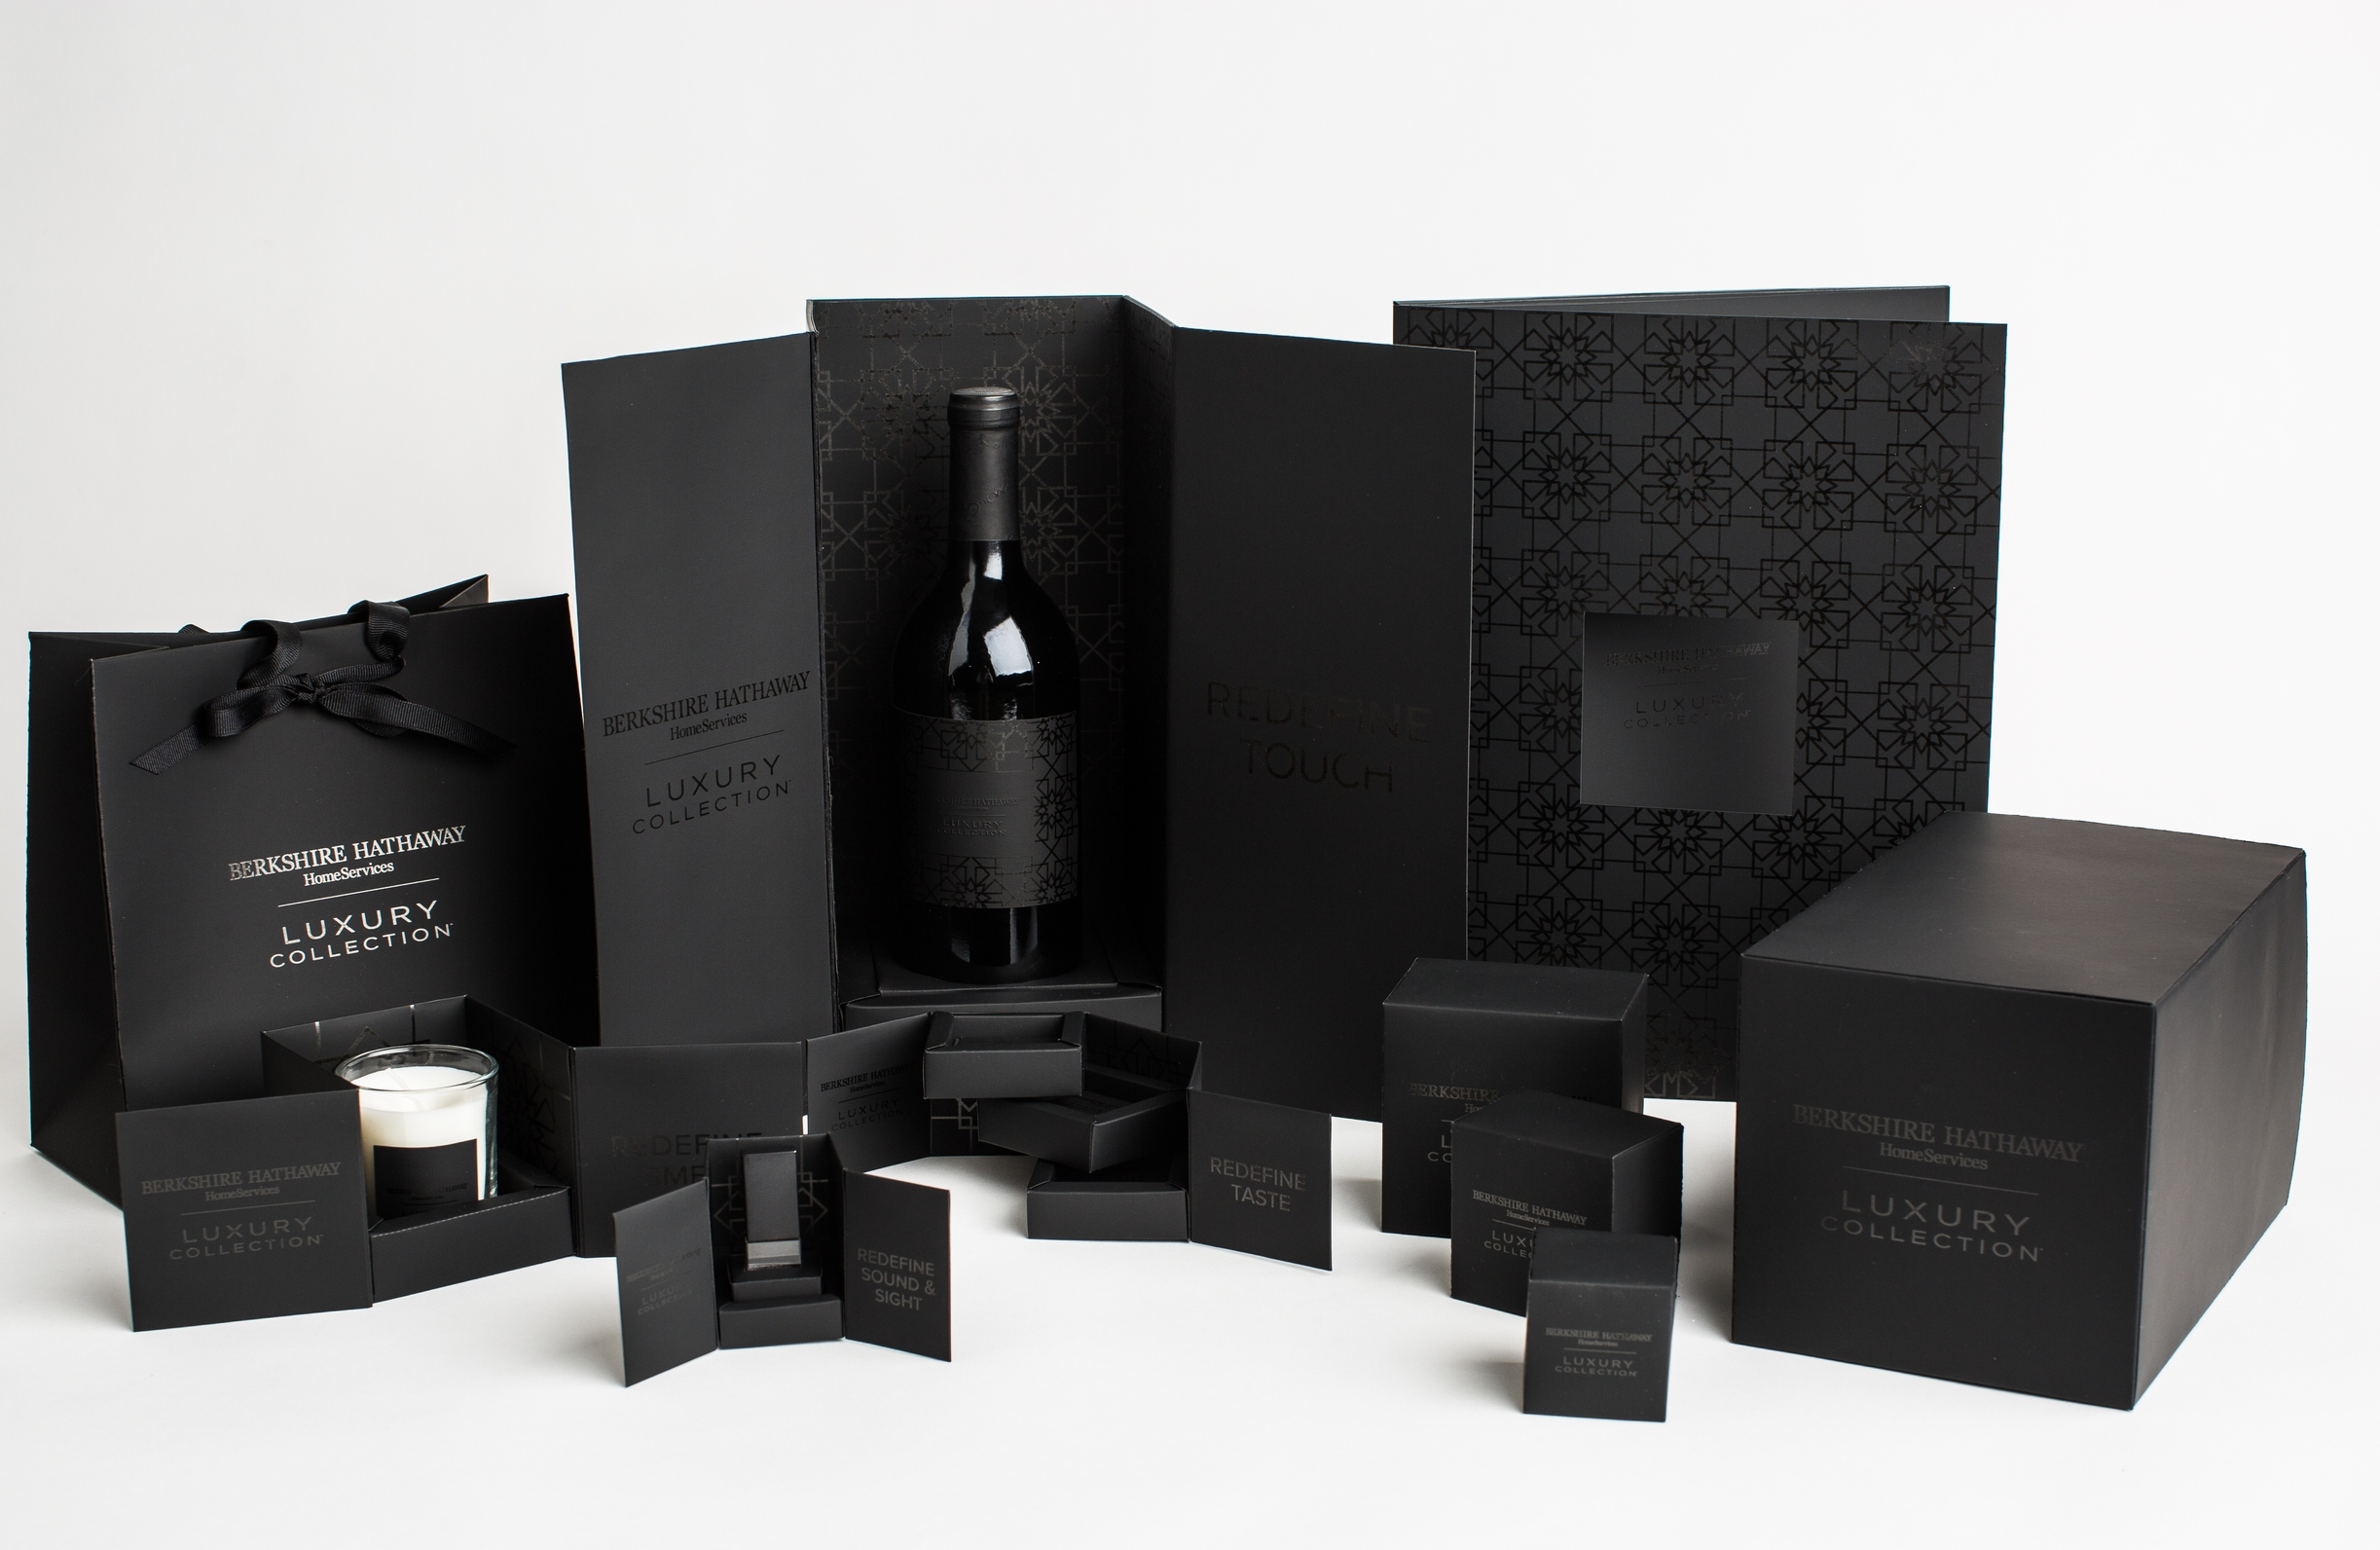 PACKAGING COLLATERAL